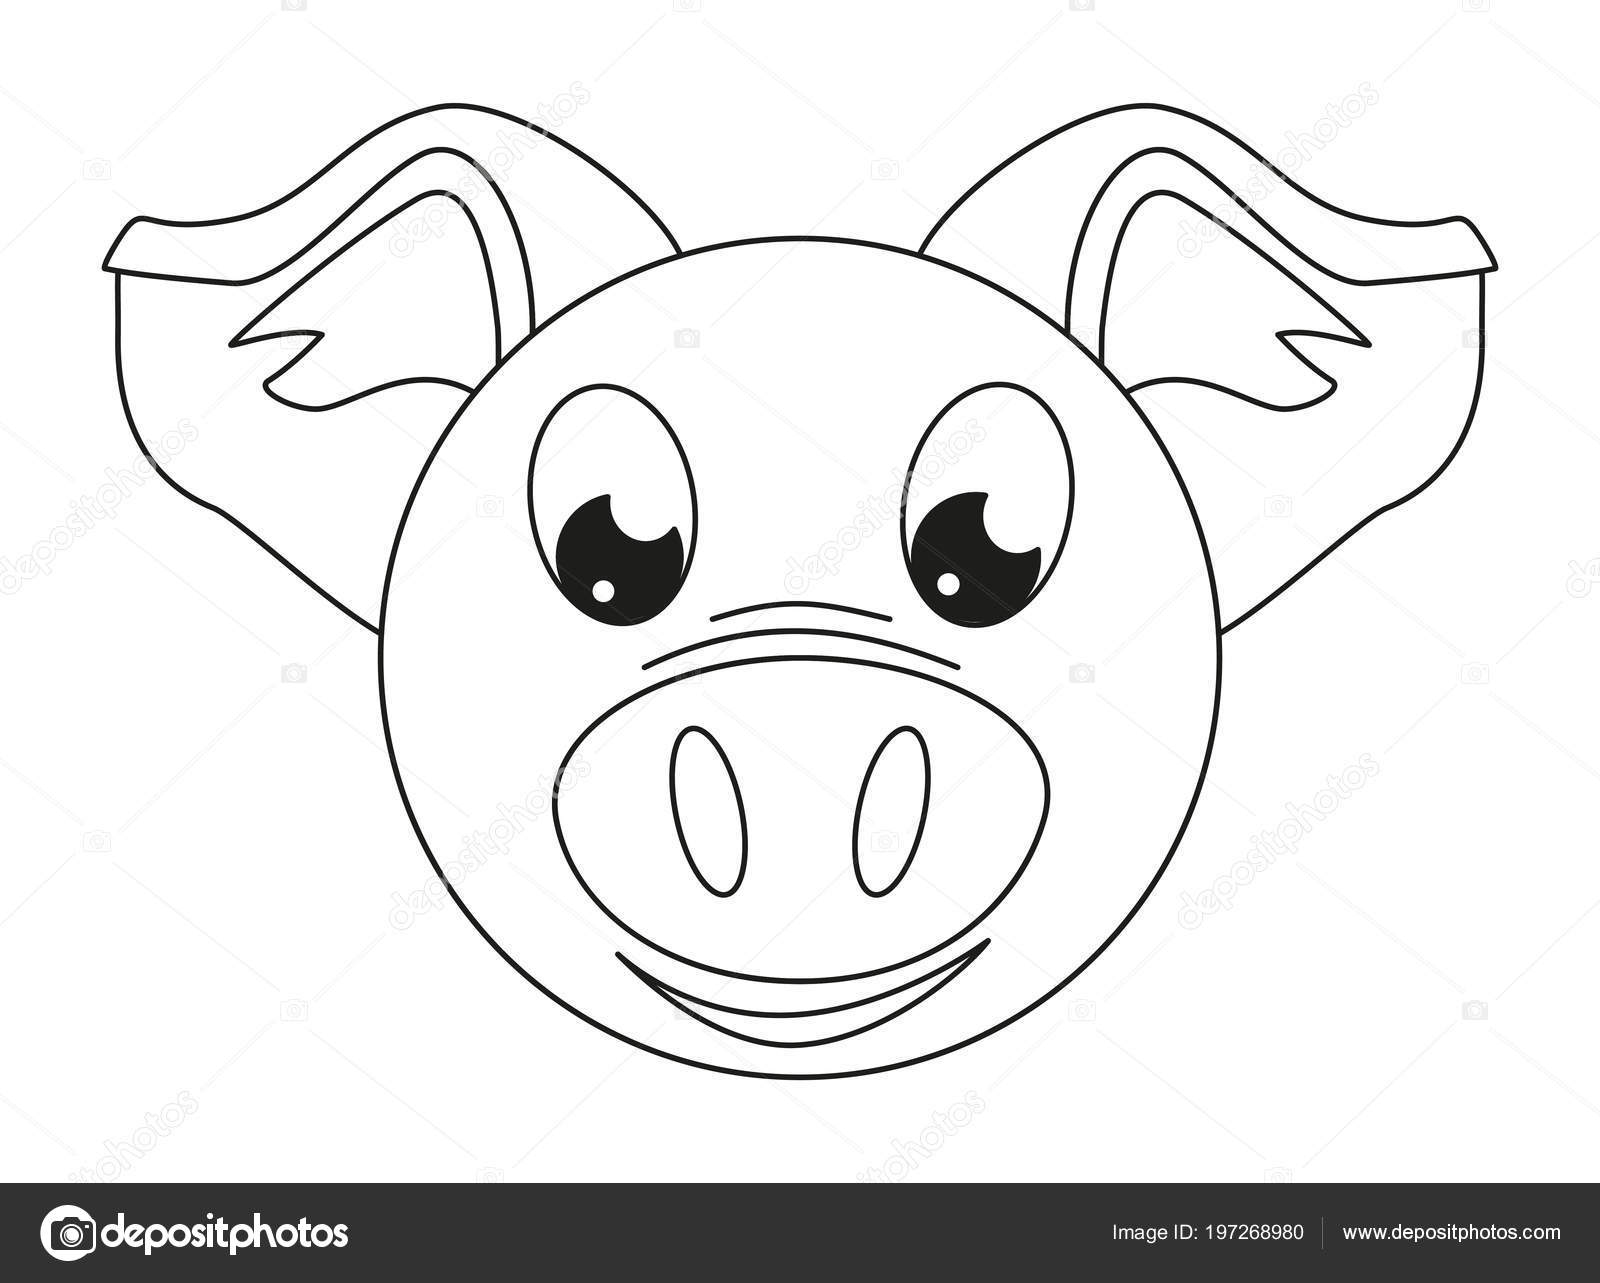 Line Art Black White Pig Face Coloring Page Adults Kids — Stock ...